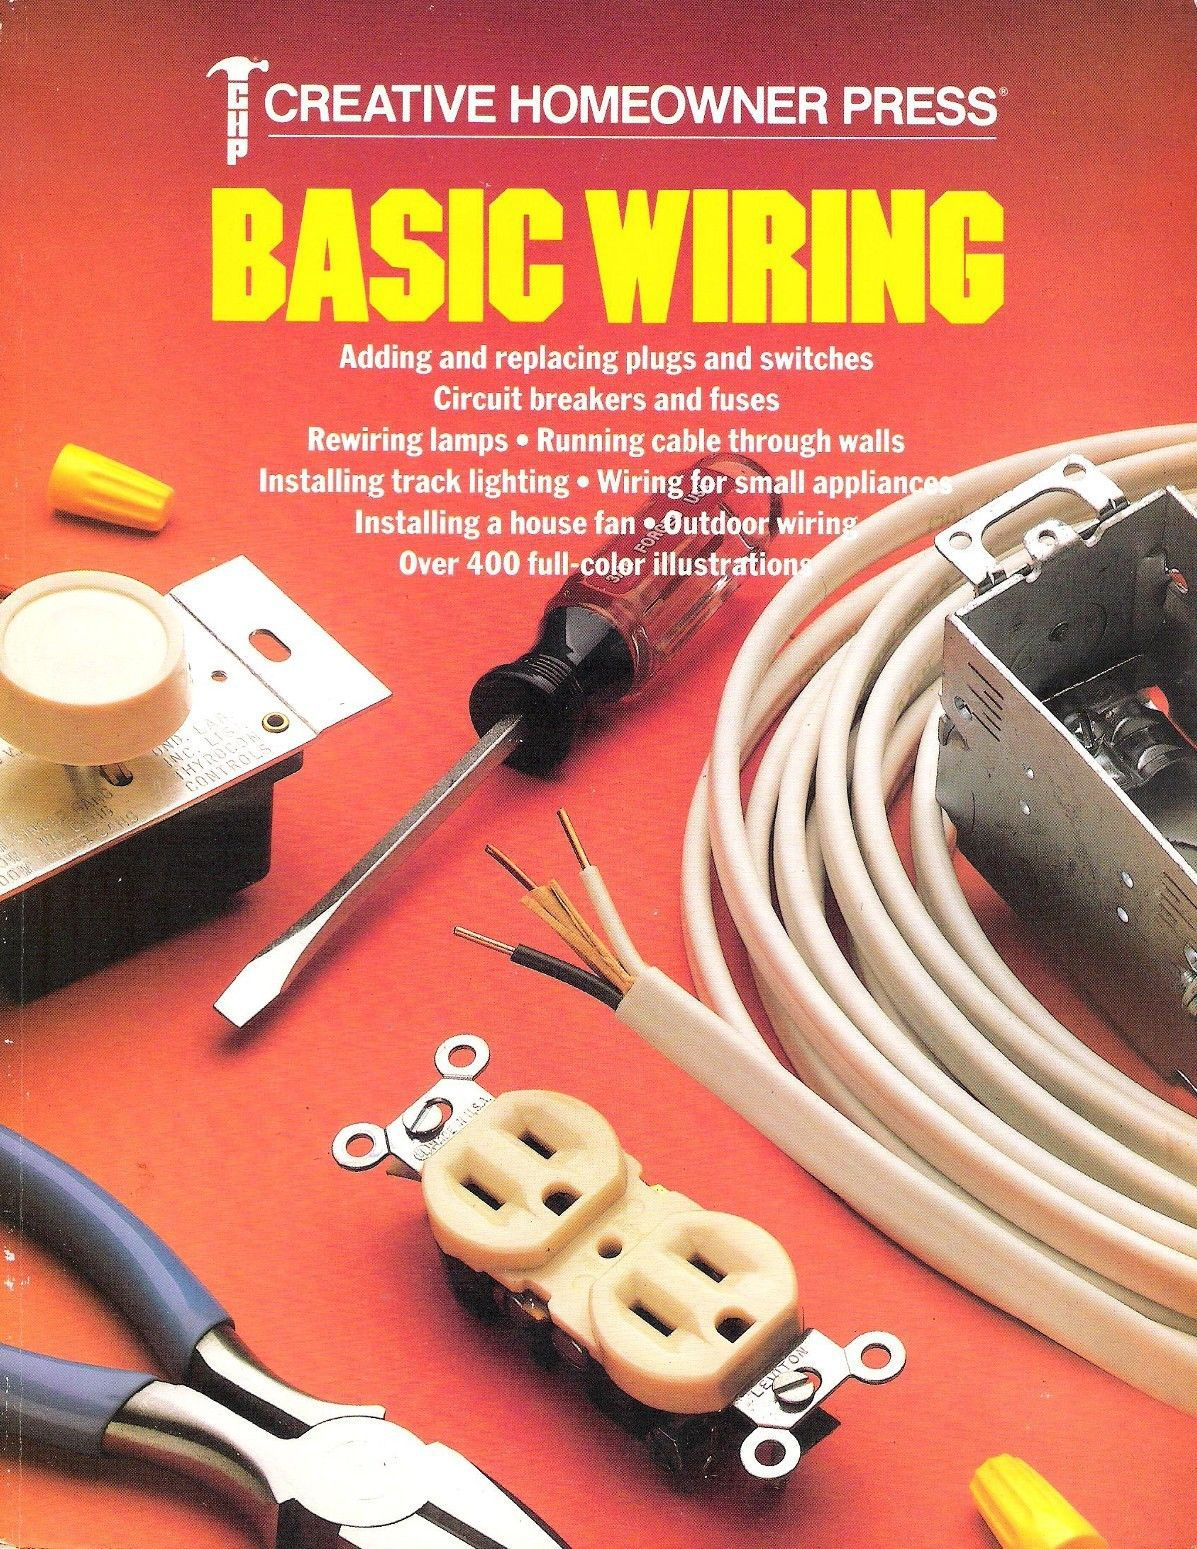 Basic Wiring by Creative Homeowner Press (1990, Paperback) Like New Condition